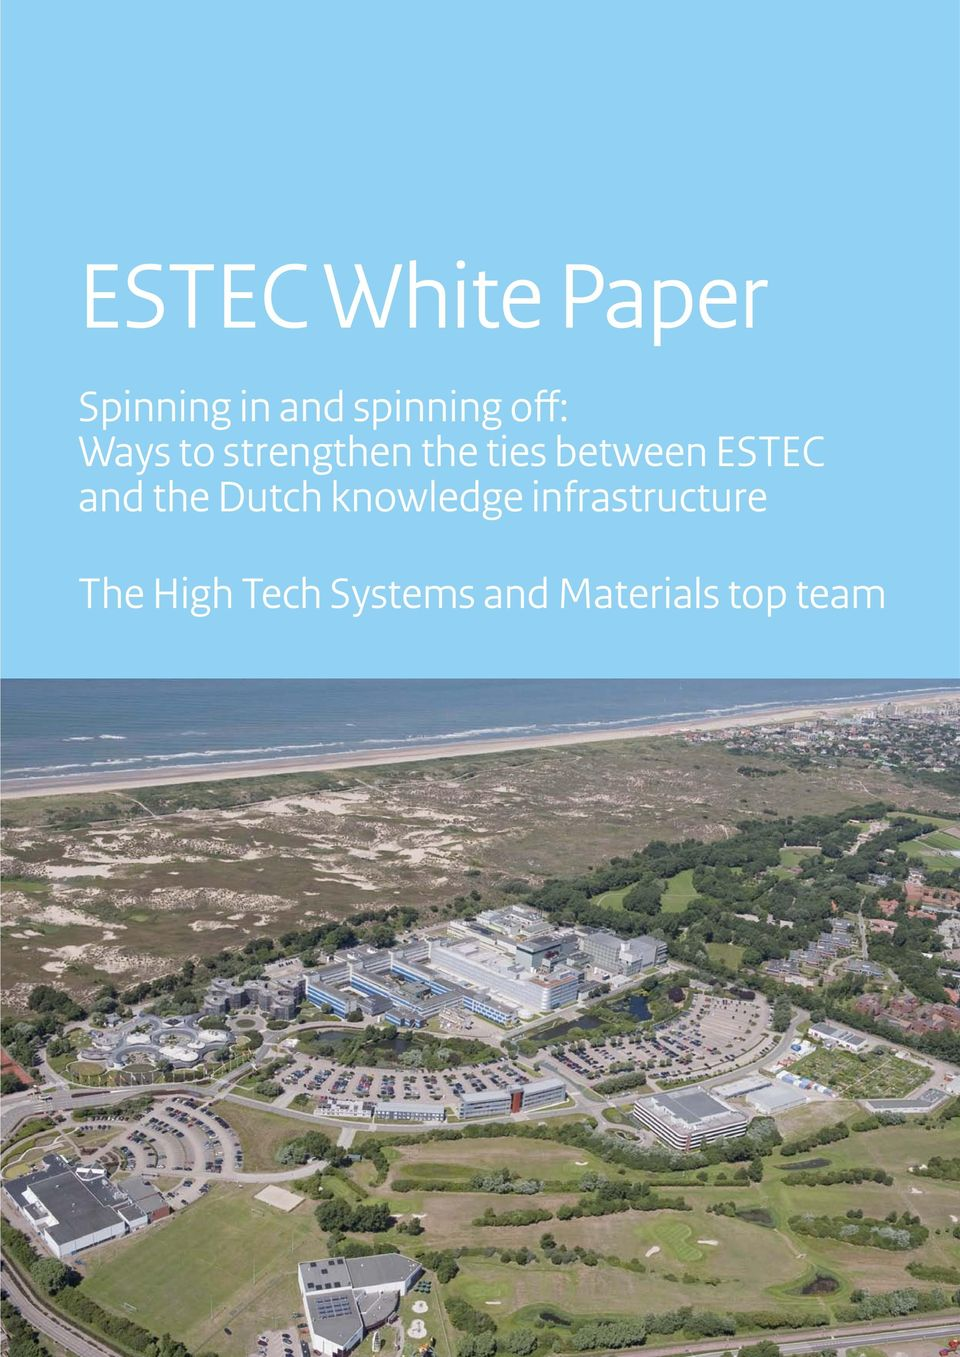 ESTEC and the Dutch knowledge